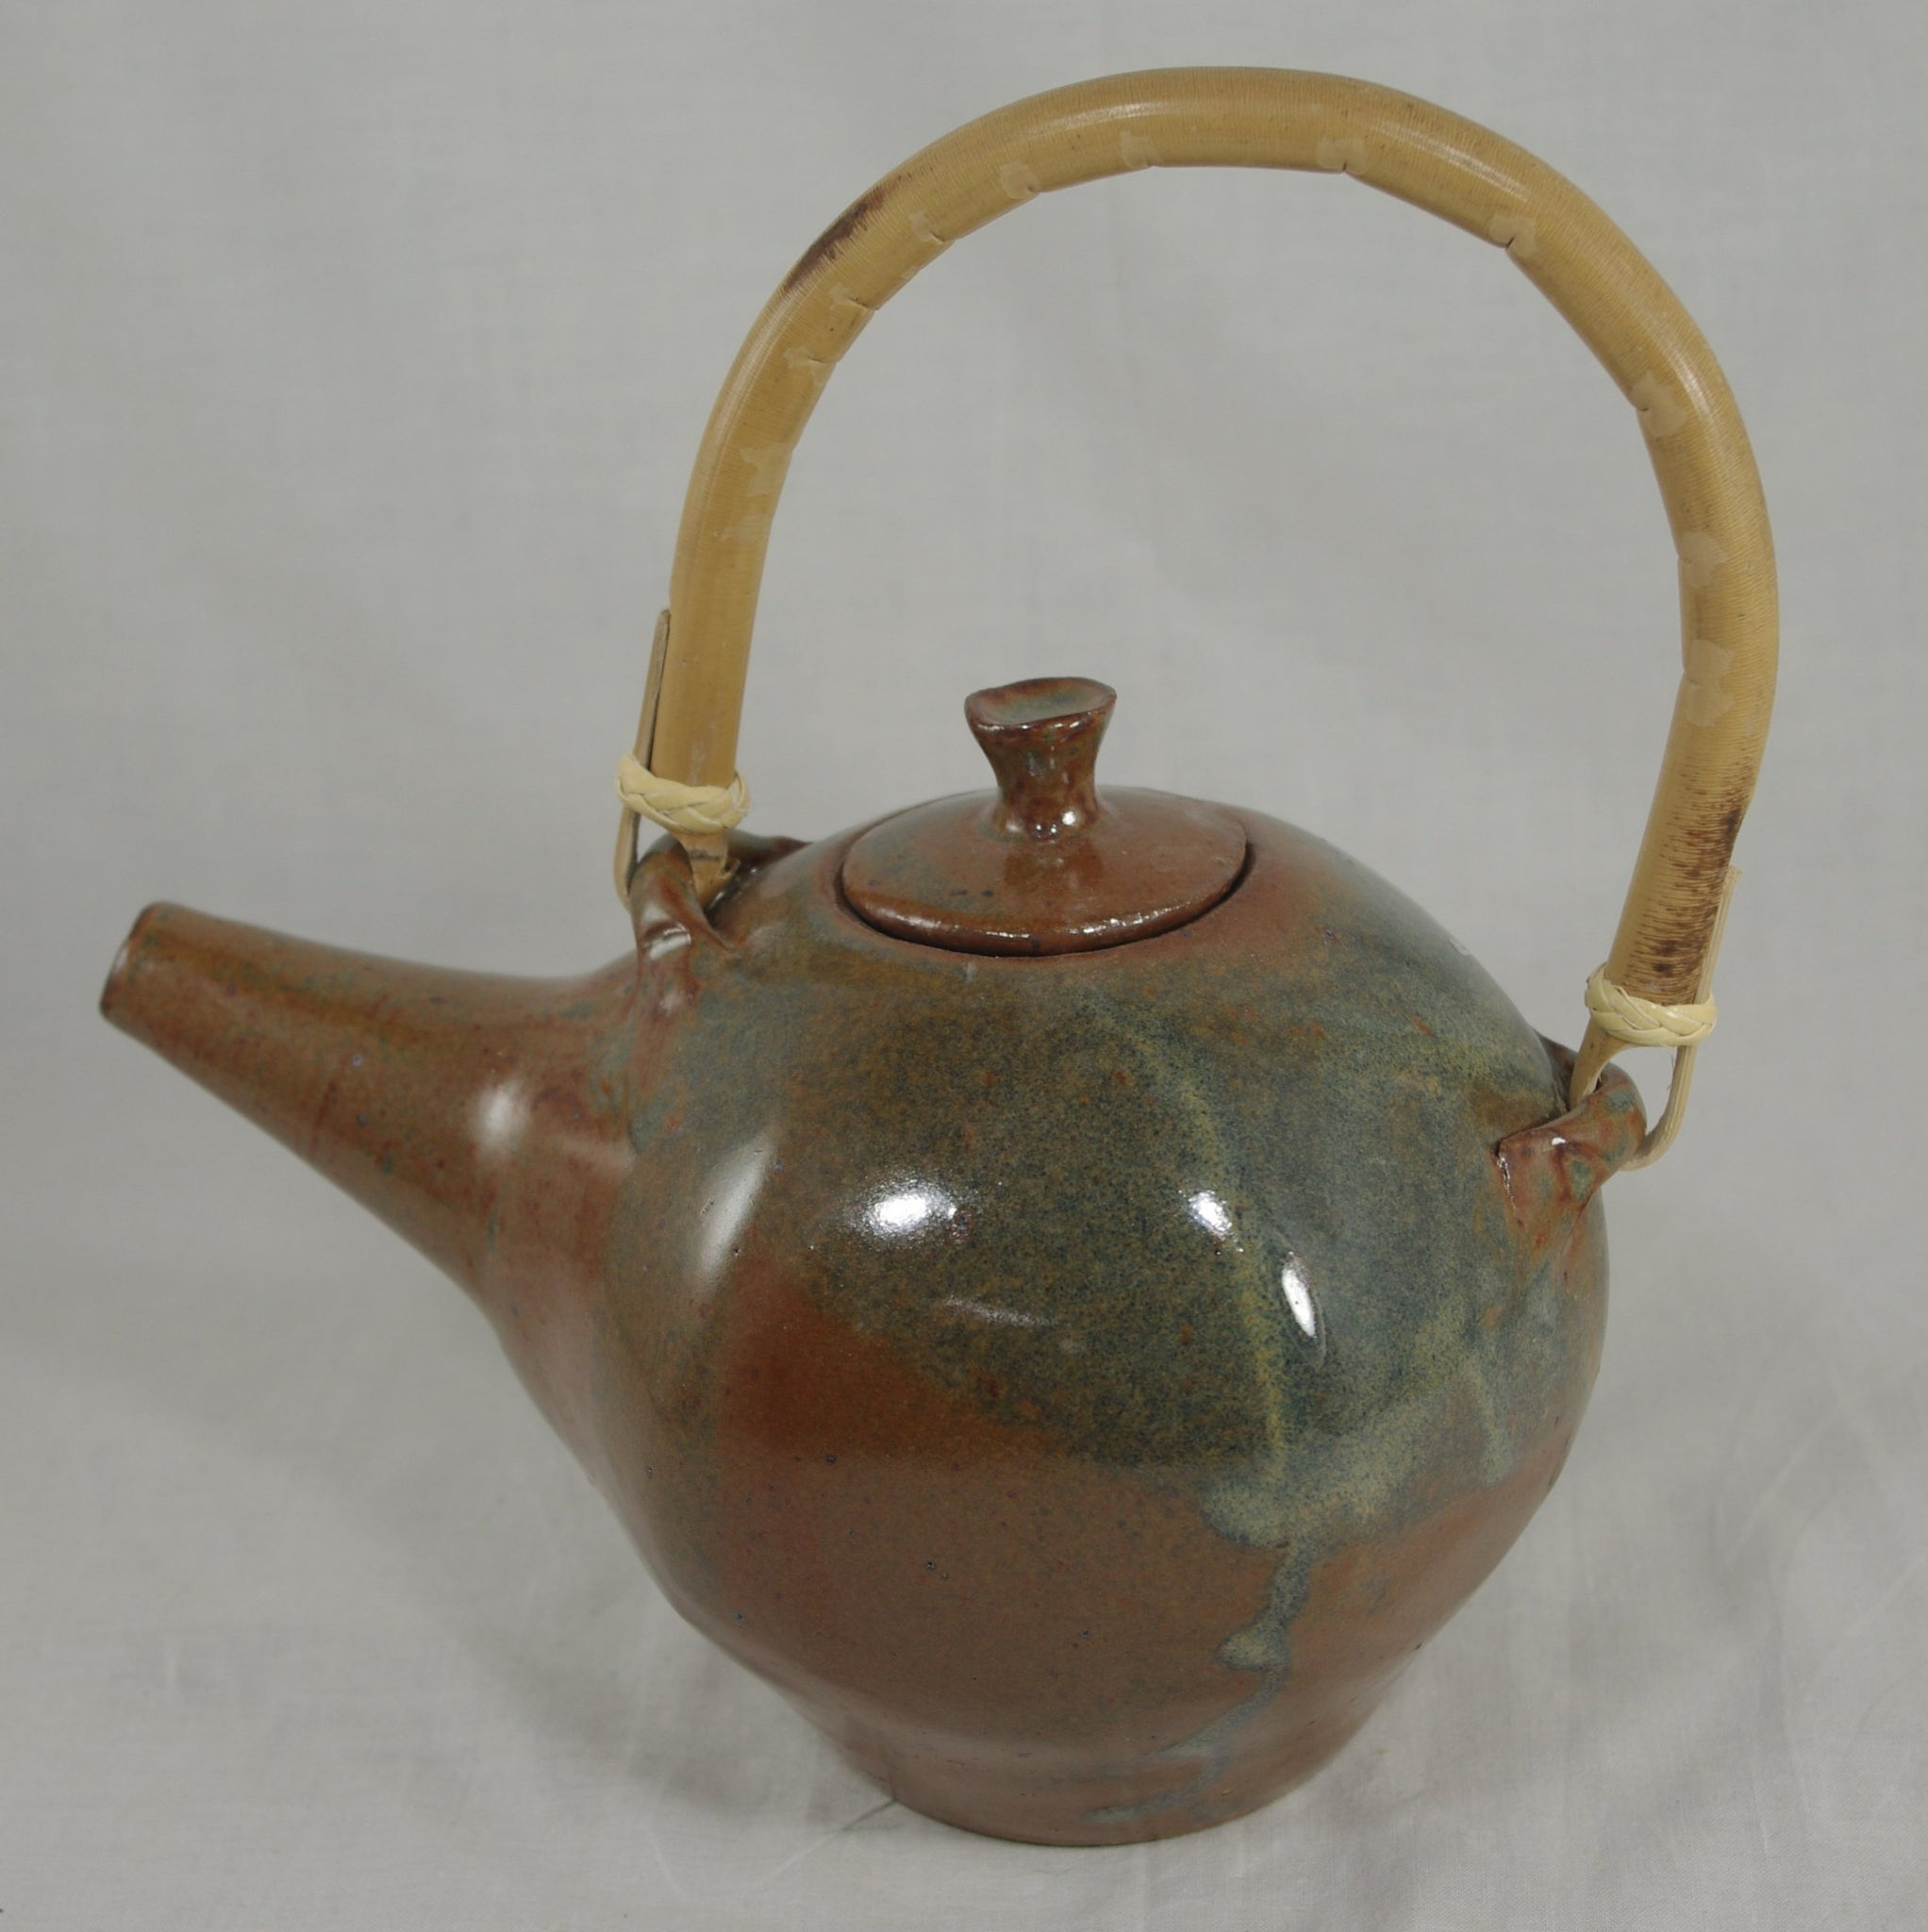 Tea Pot with Bamboo Handle # 1 - Skip Bleecker